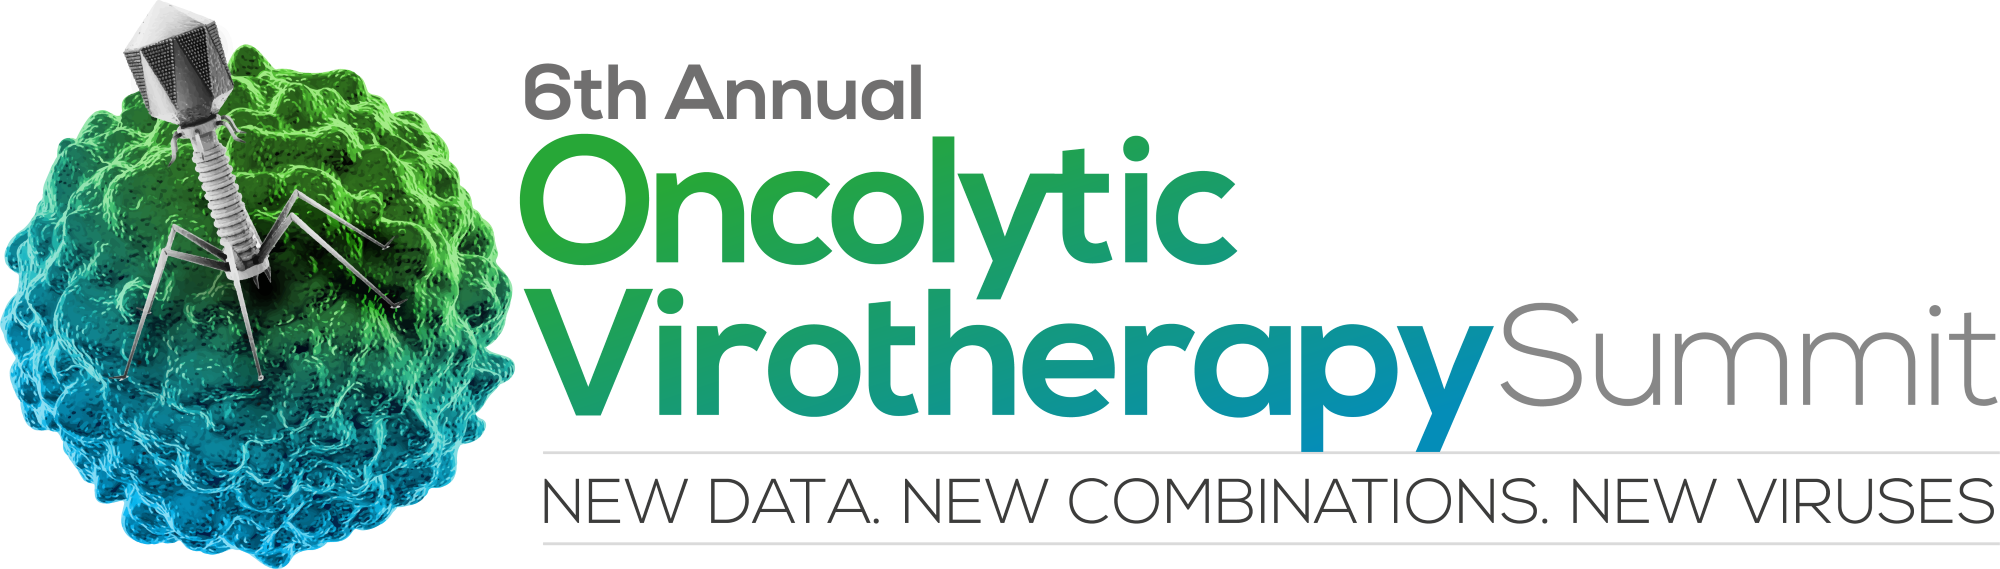 6th Oncolytic Virotherapy Summit